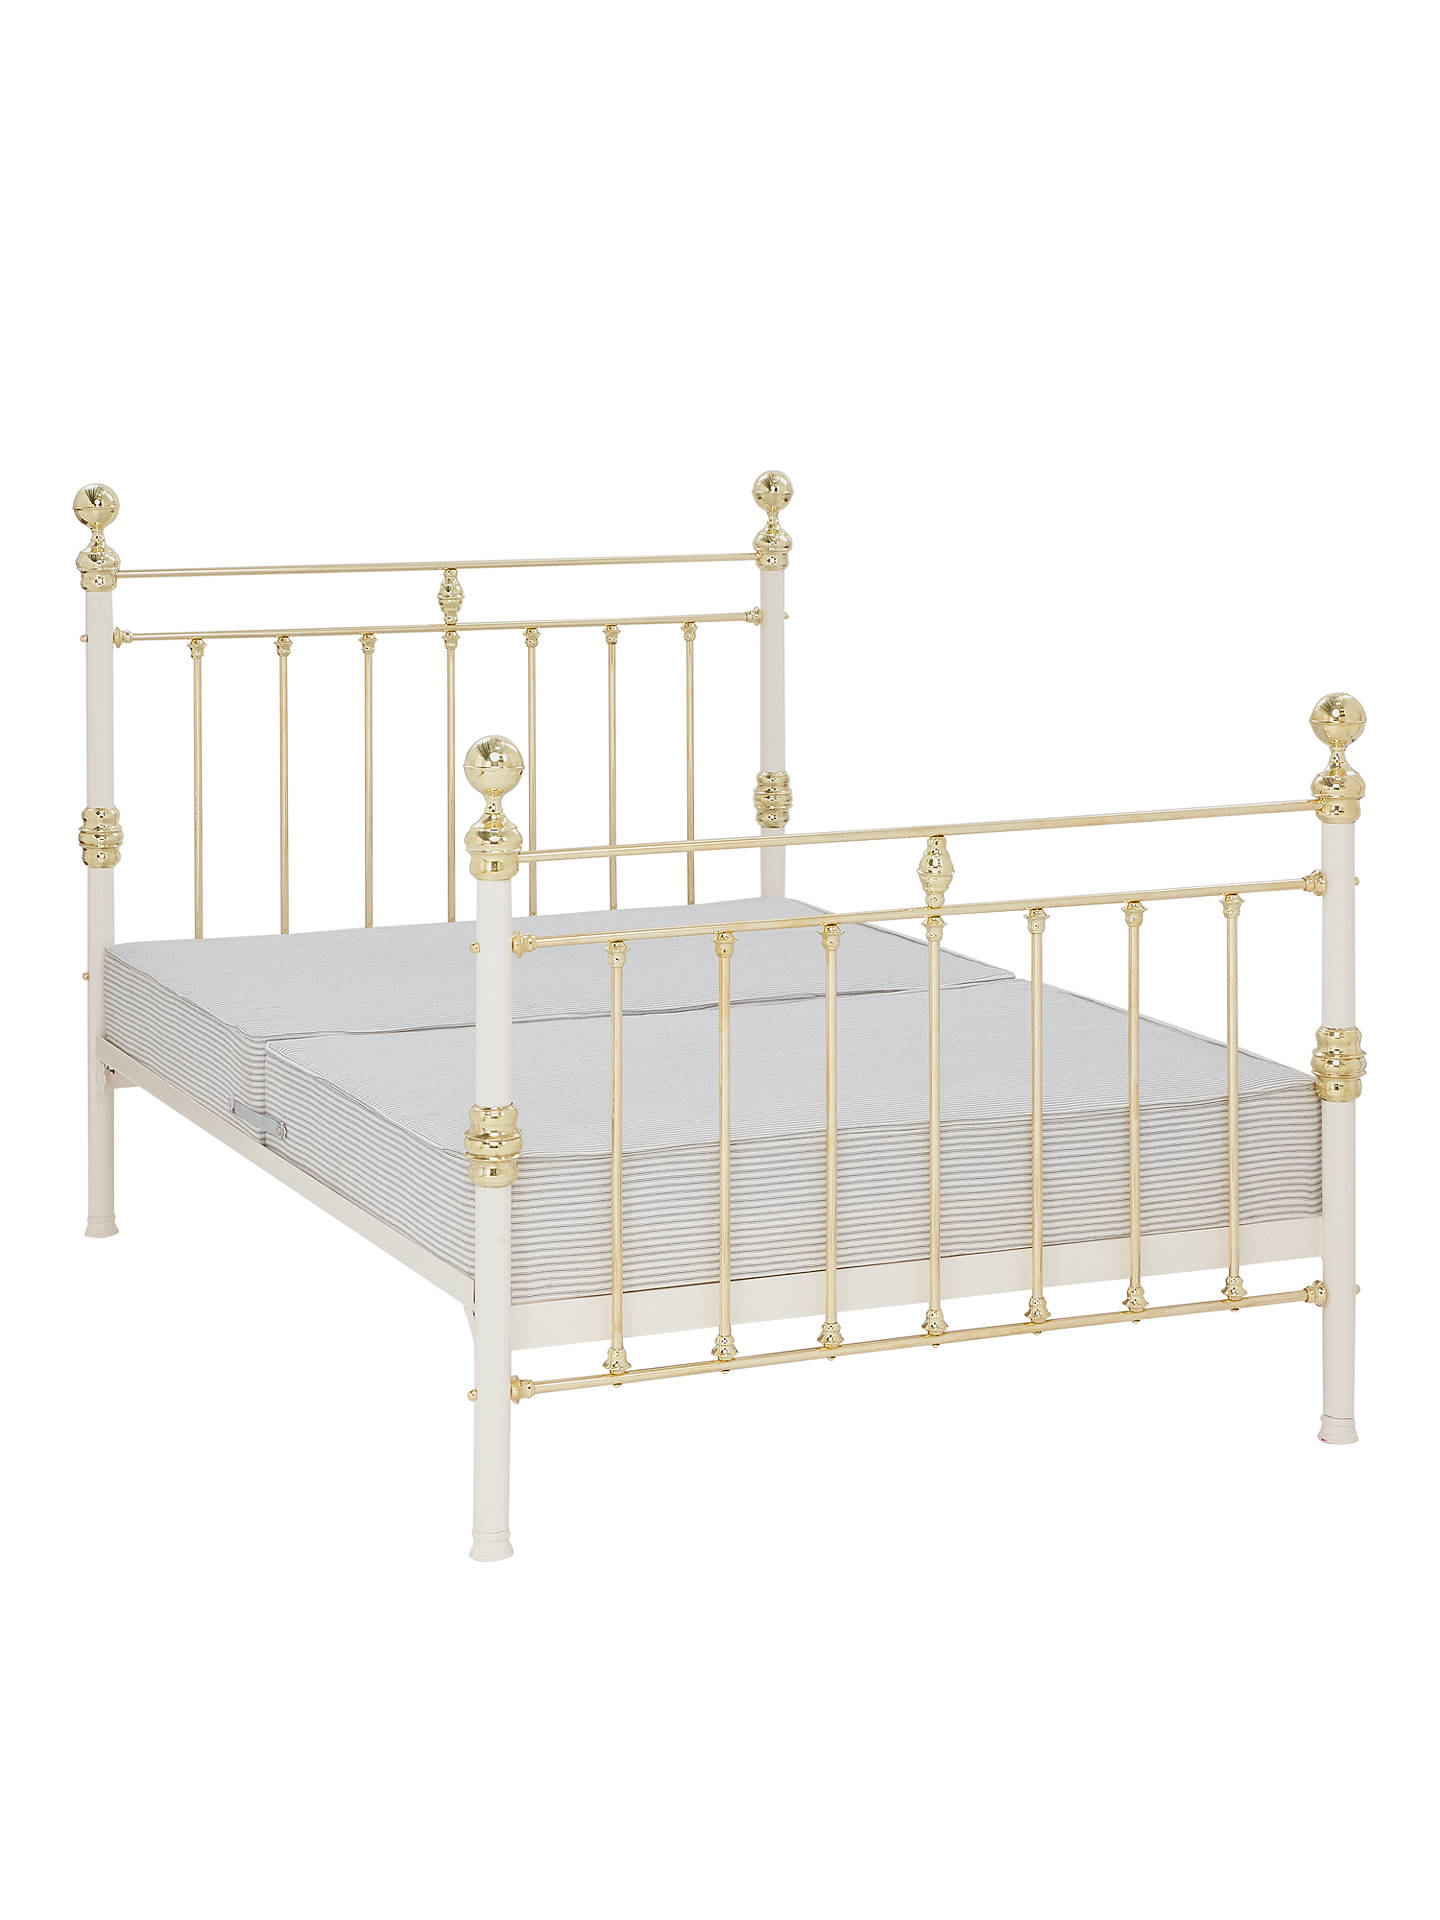 Wrought Iron And Brass Bed Co. George Sprung Bed Frame, Double ...